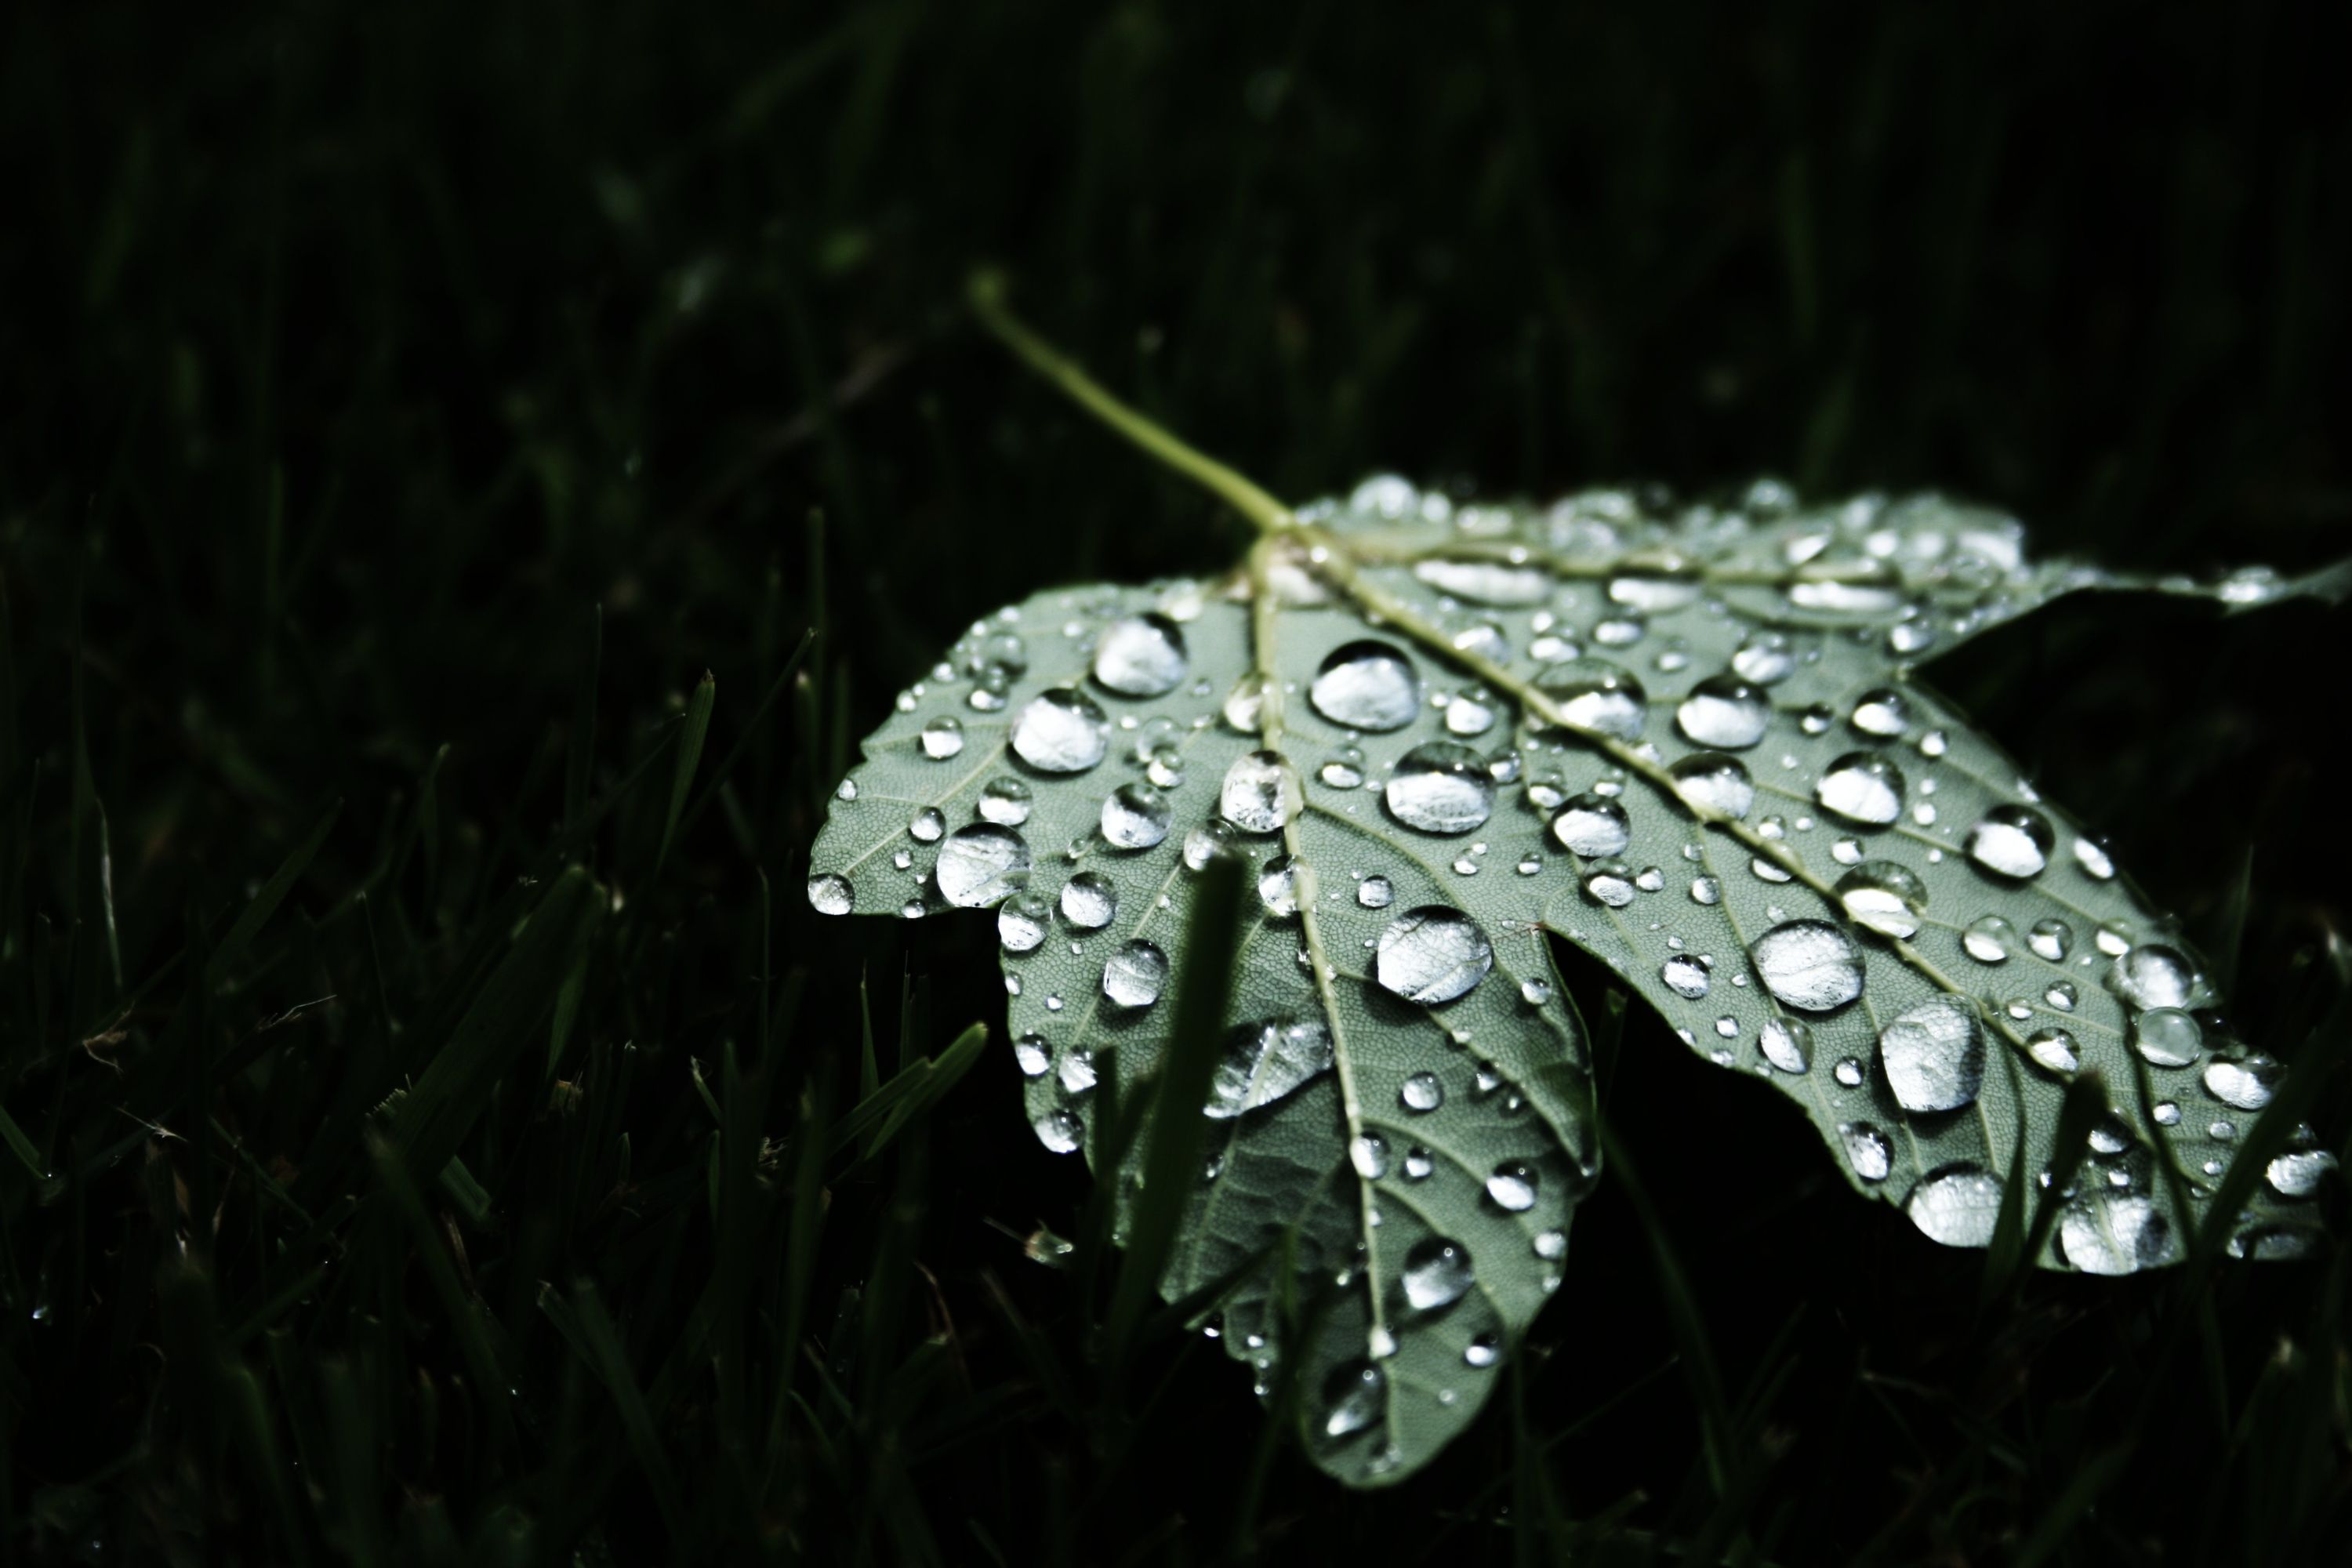 Leaf in the dark with water droplets